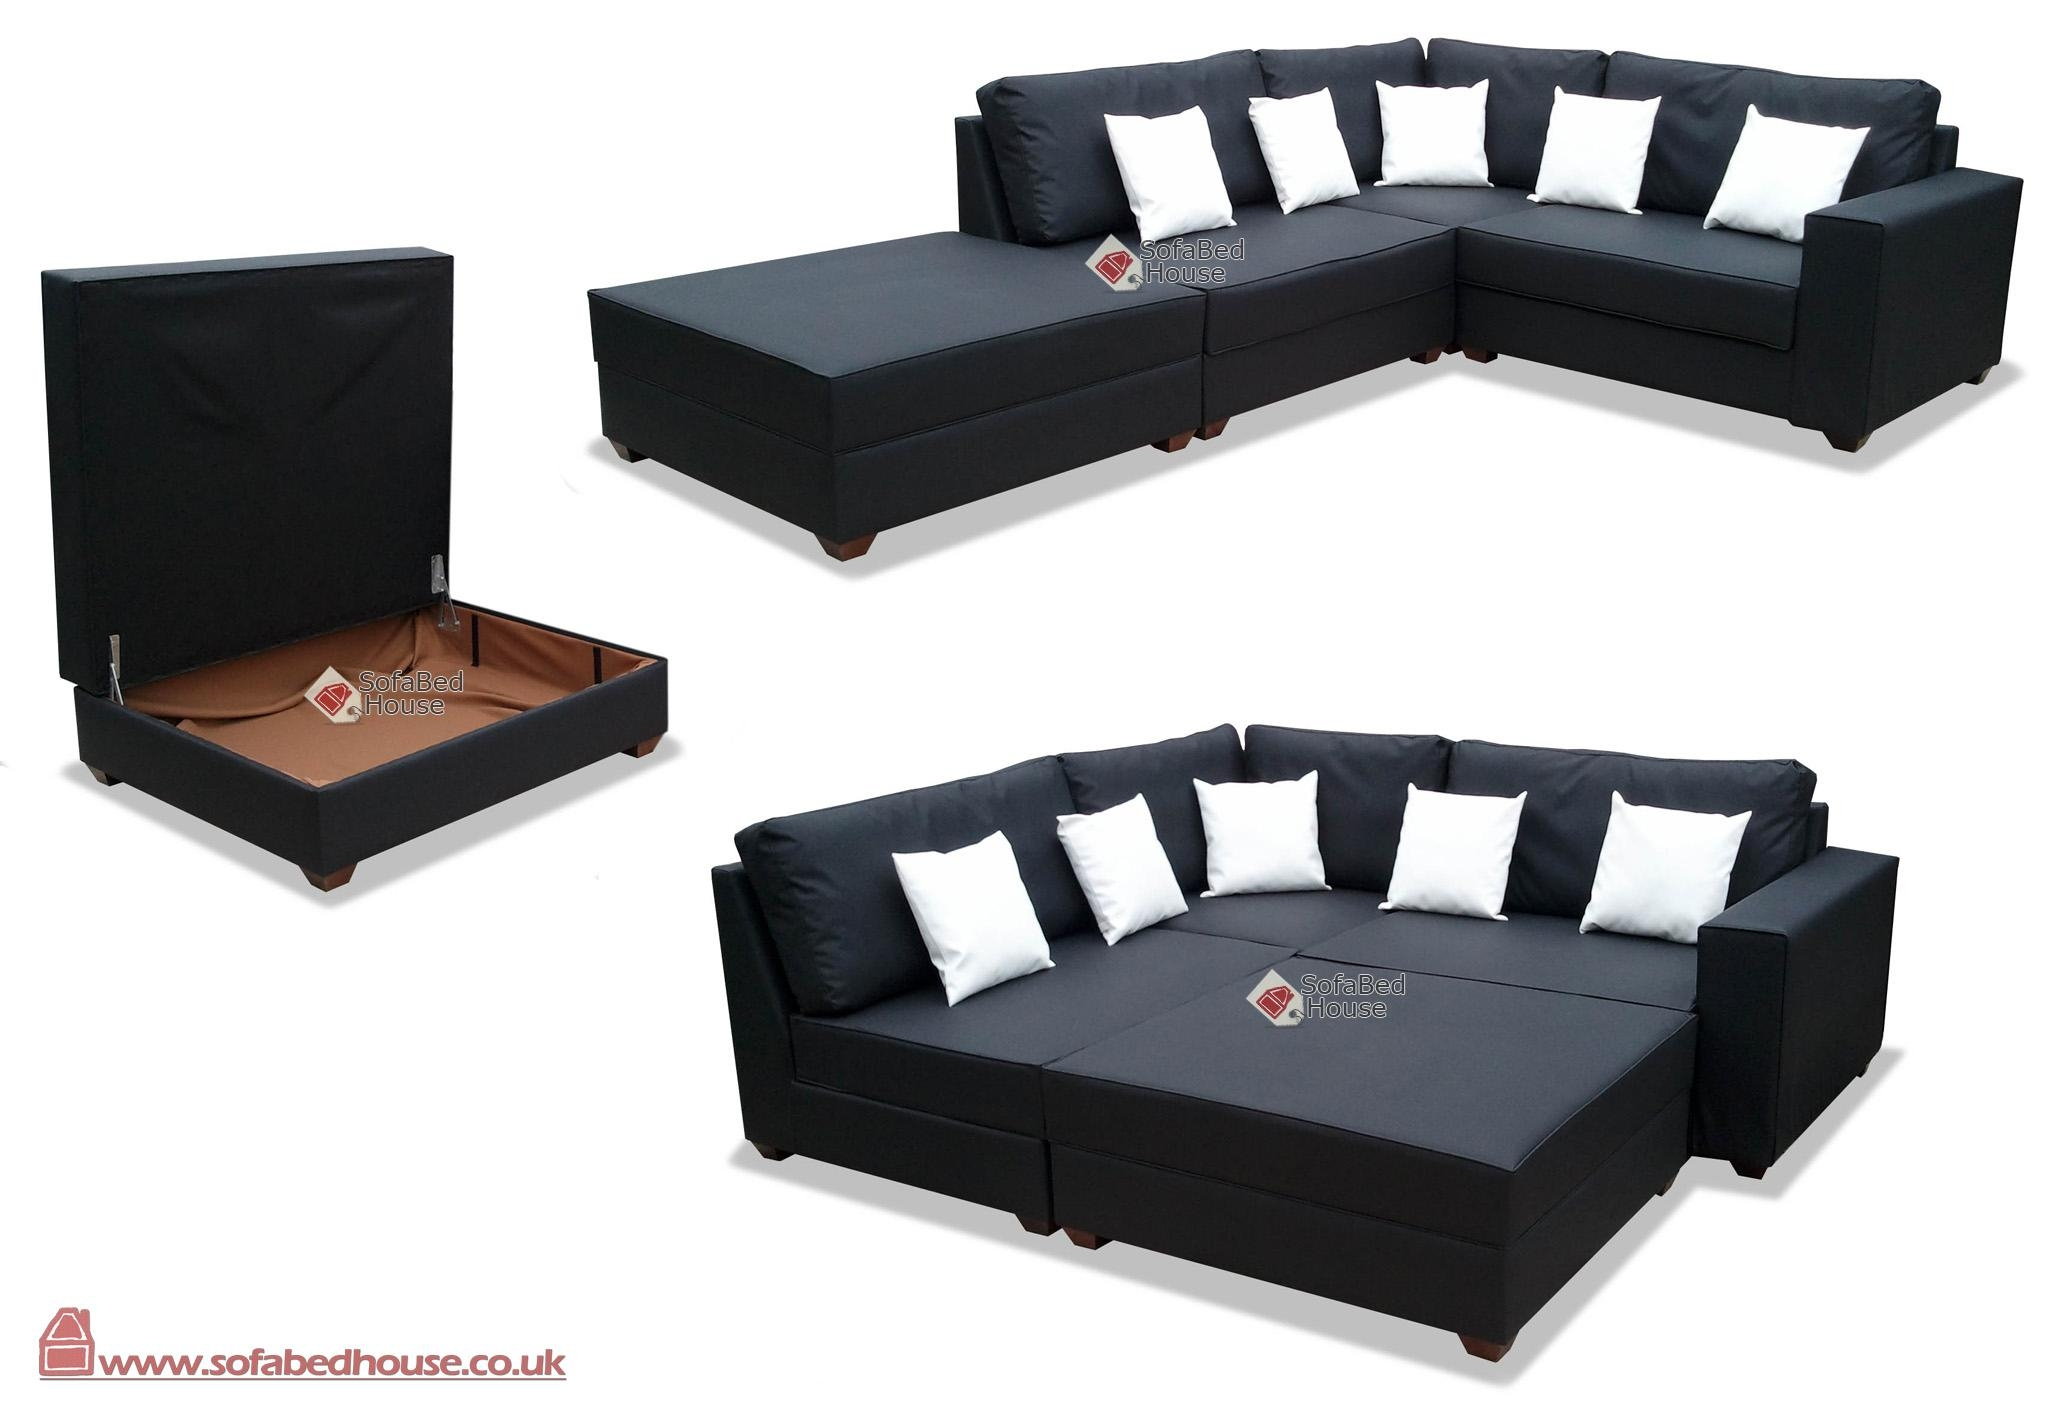 Cheap Corner Sofa Beds Uk | Crepeloversca Intended For Cheap Corner Sofas (View 15 of 20)